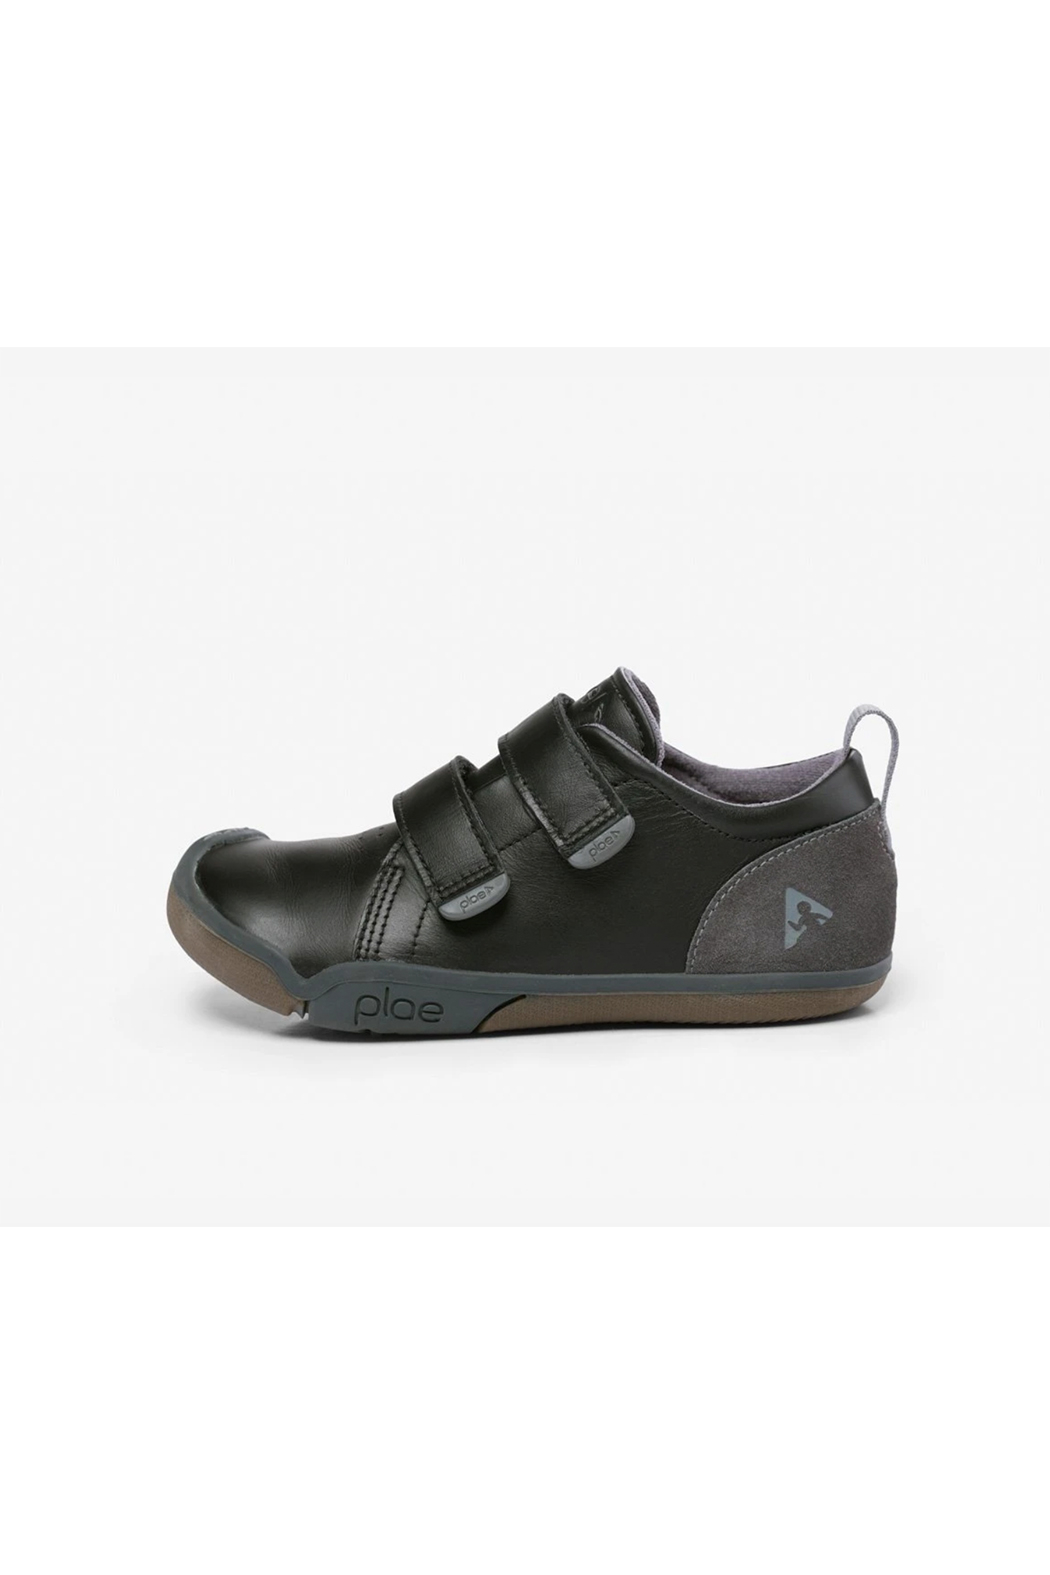 PLAE Roan Sneaker - All Over Black - Main Image